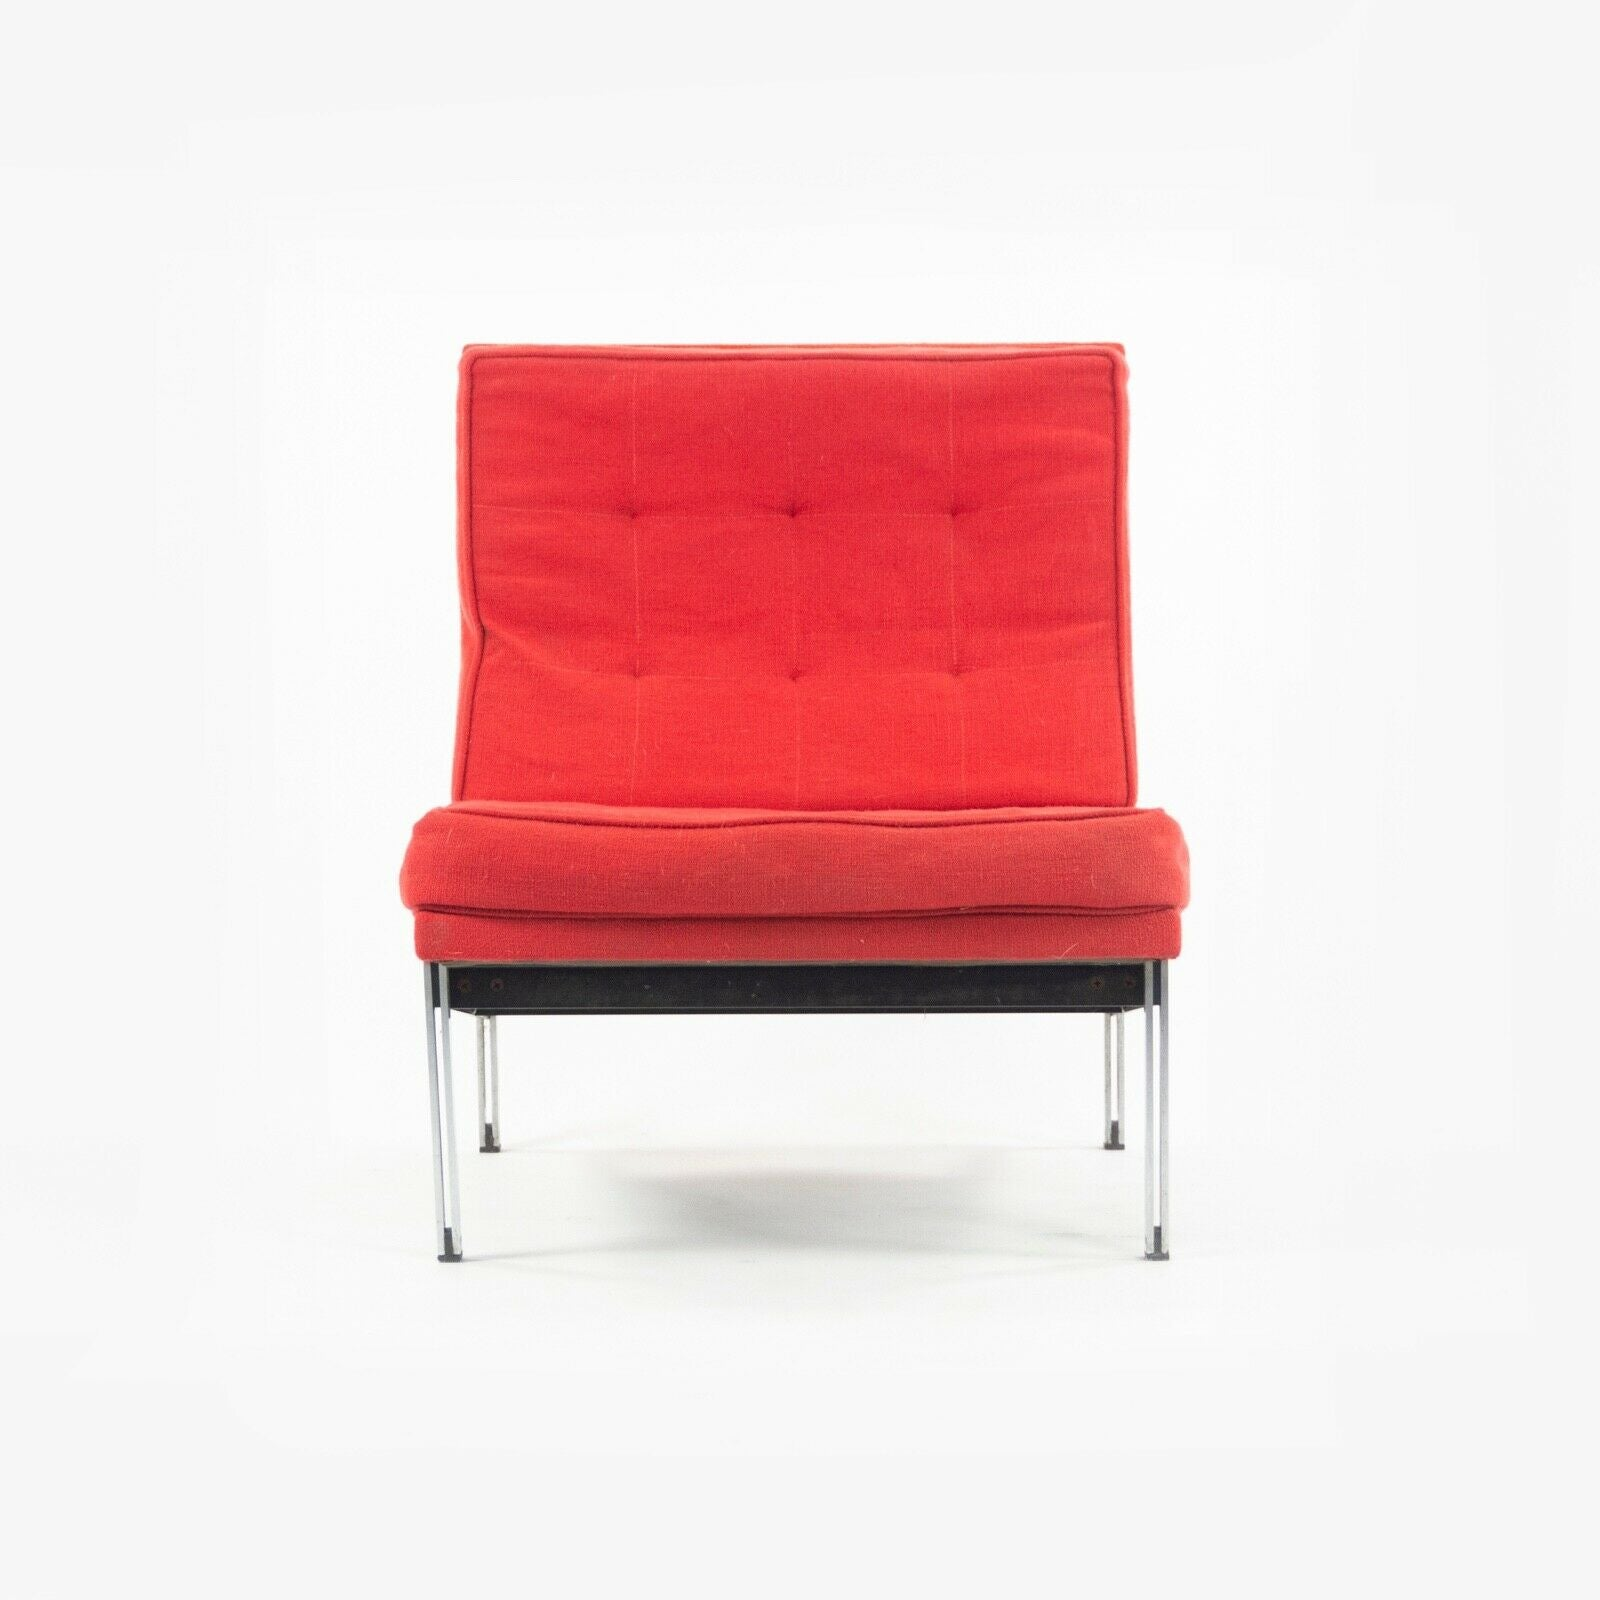 SOLD 1950s Florence Knoll Associates Parallel Bar Lounge Chair Original Red Fabric